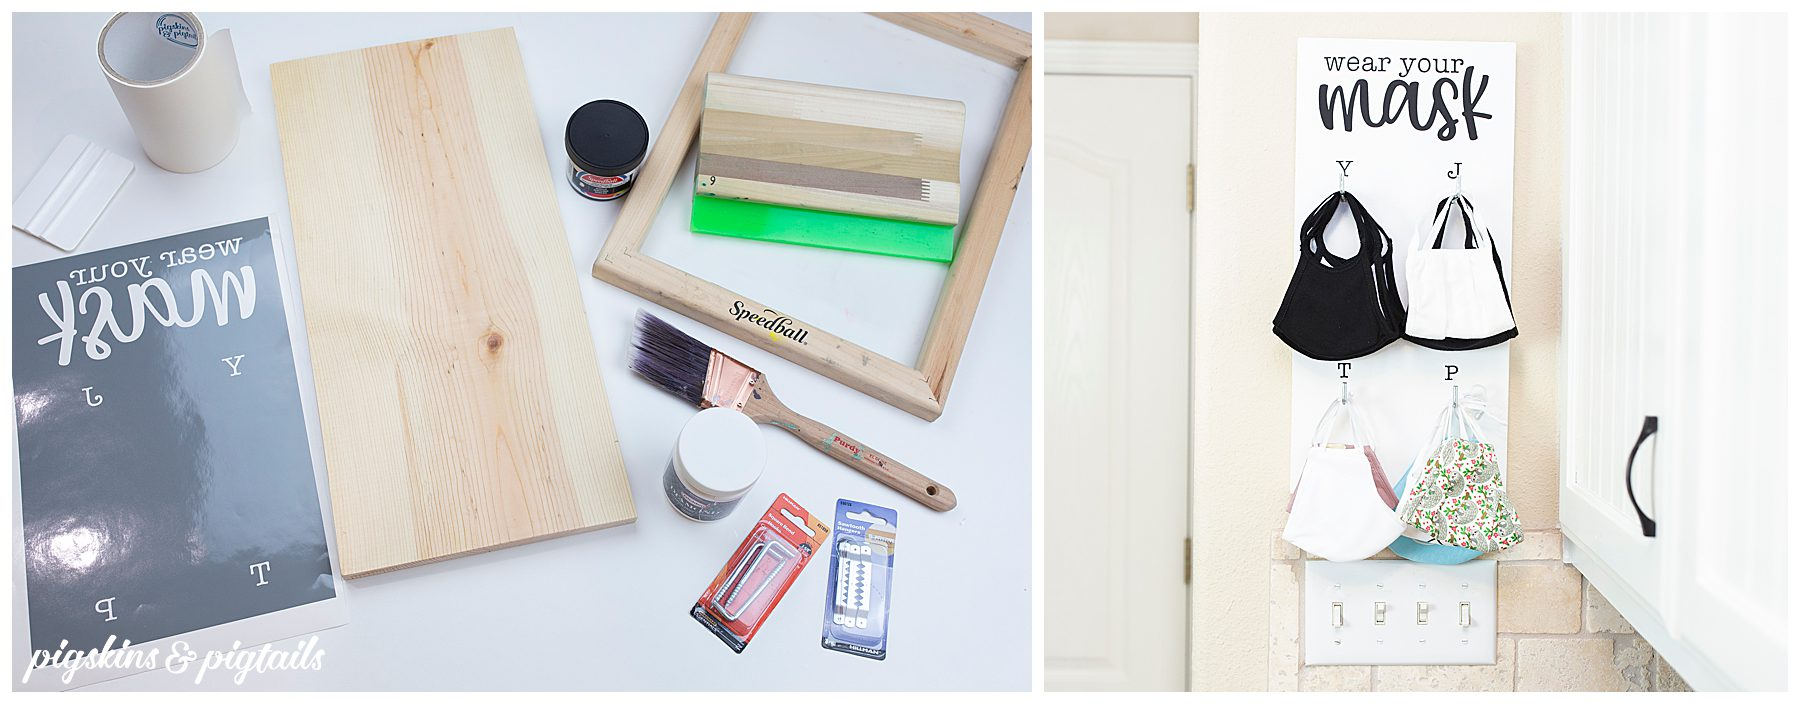 screen printing wood cricut tutorial how to